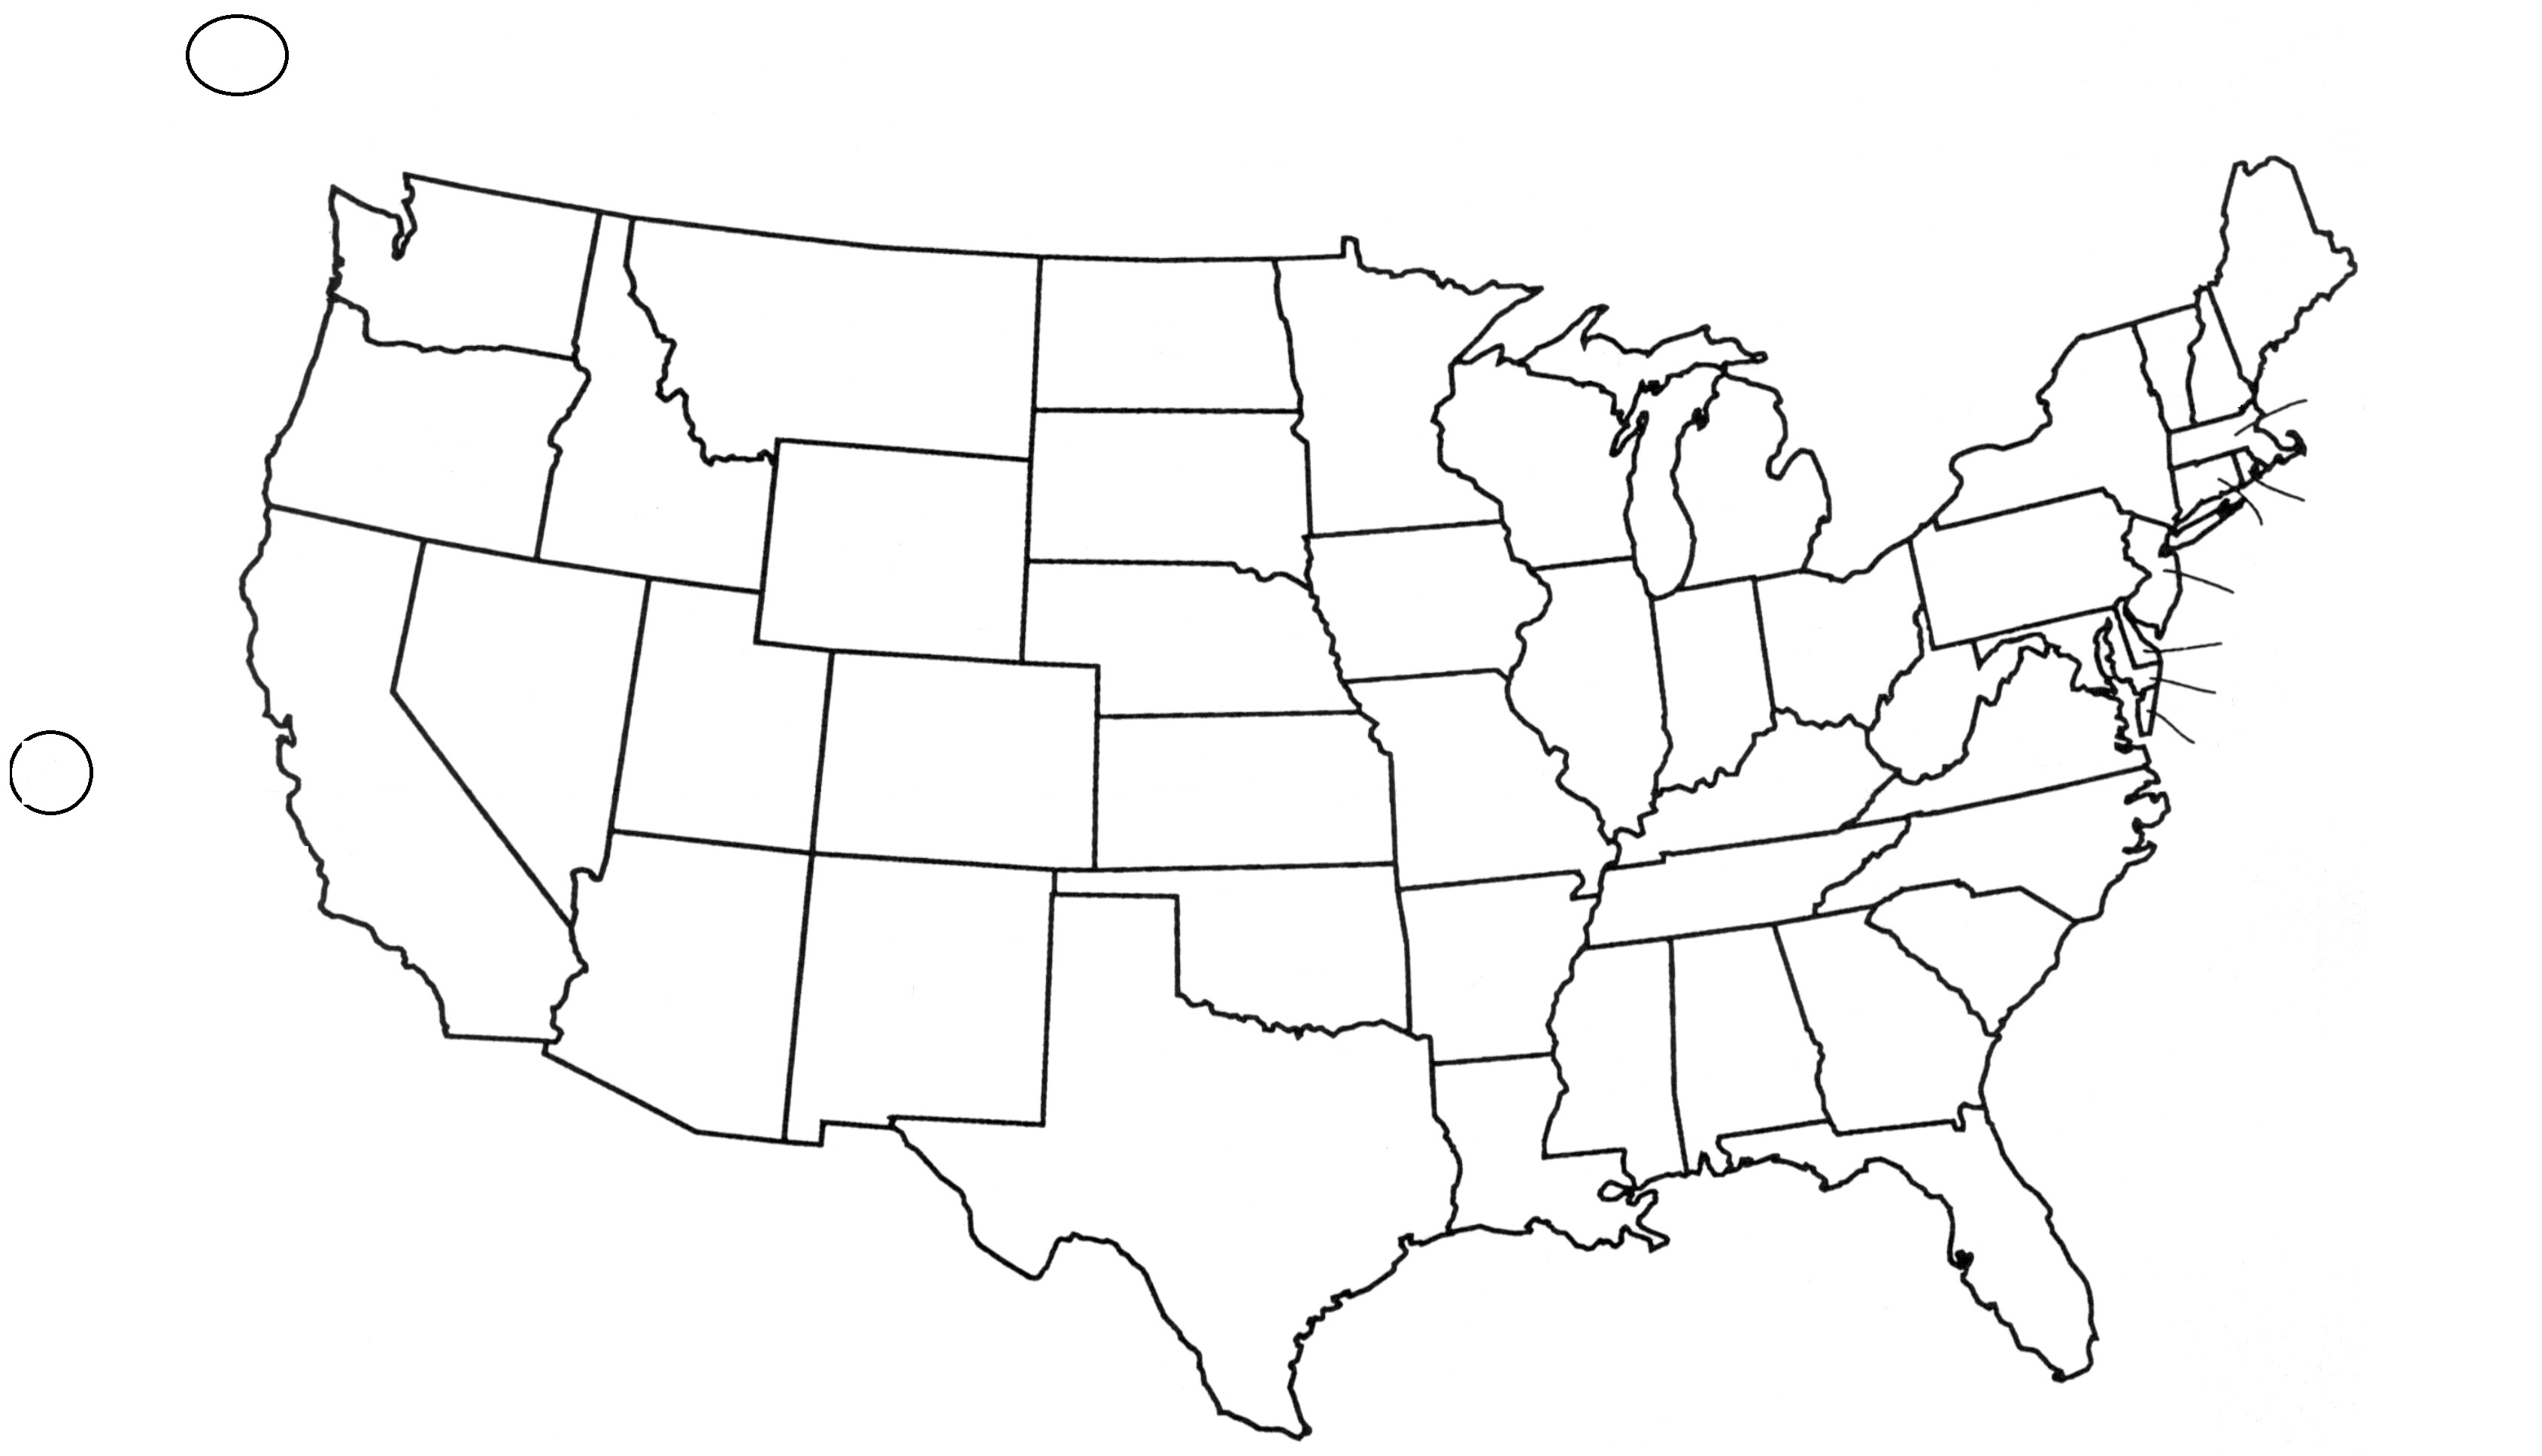 Wwwpleachercommptrubasicusmapjpg - Blank usa map